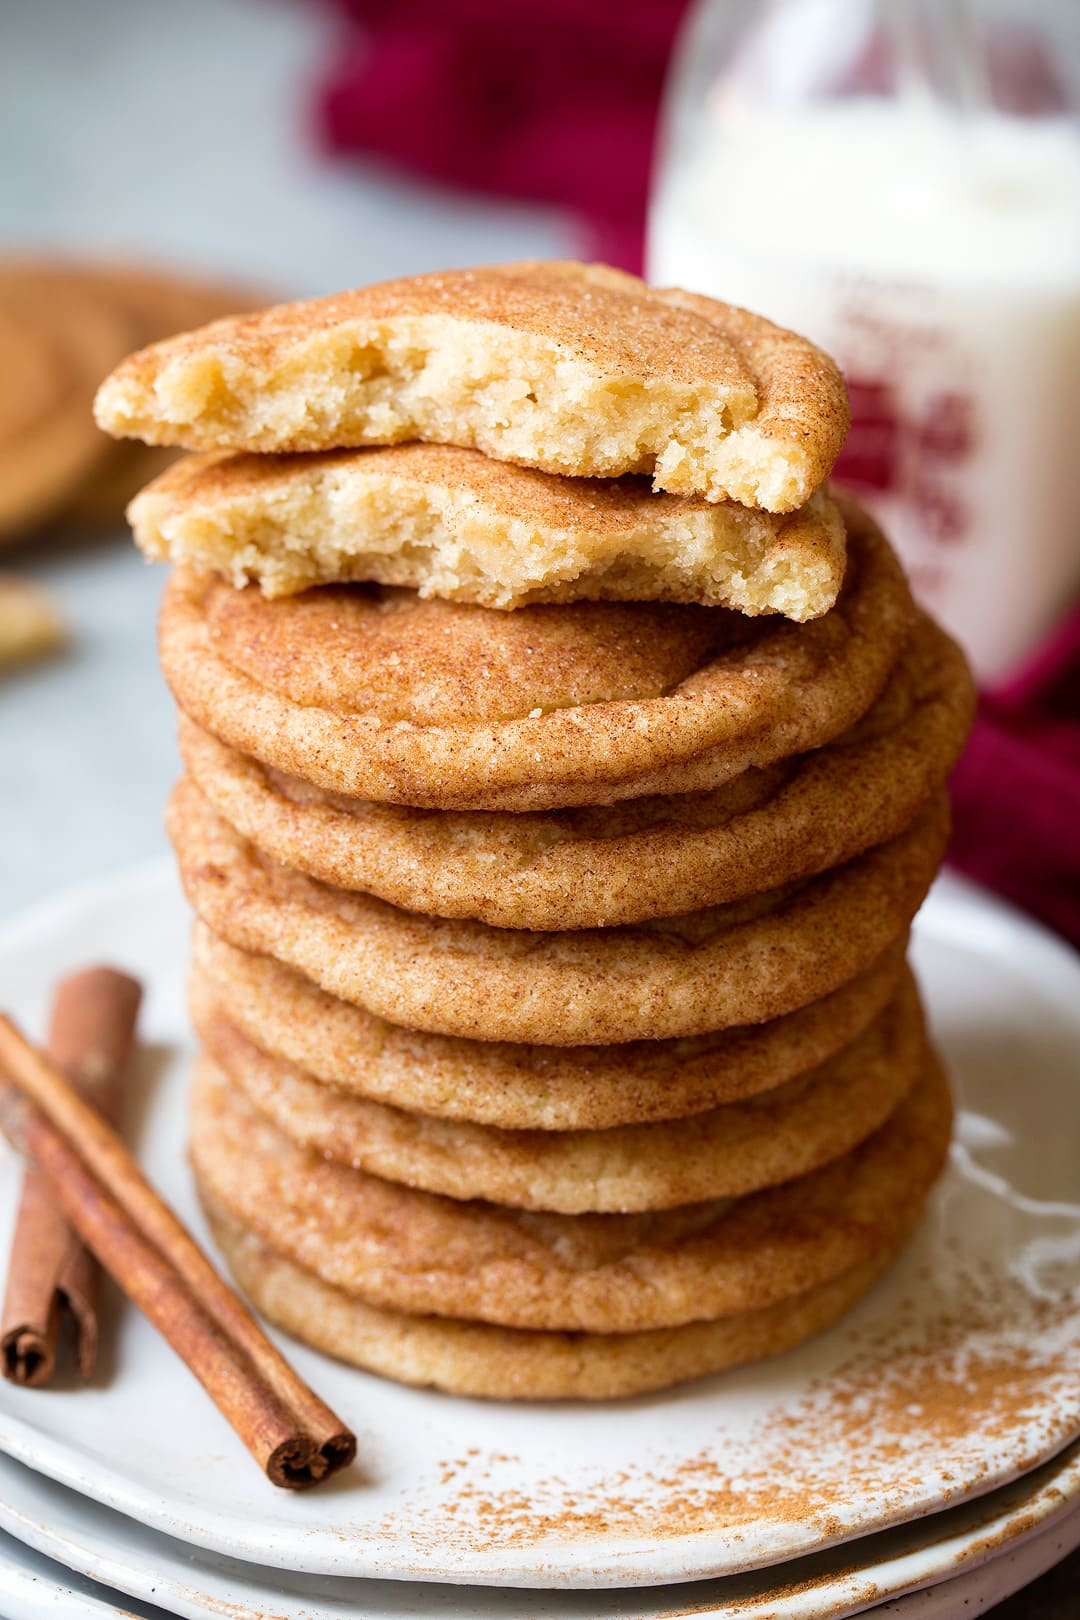 Stack of snickerdoodle cookies on a plate with one cooke on top broken in half to show texture of interior.